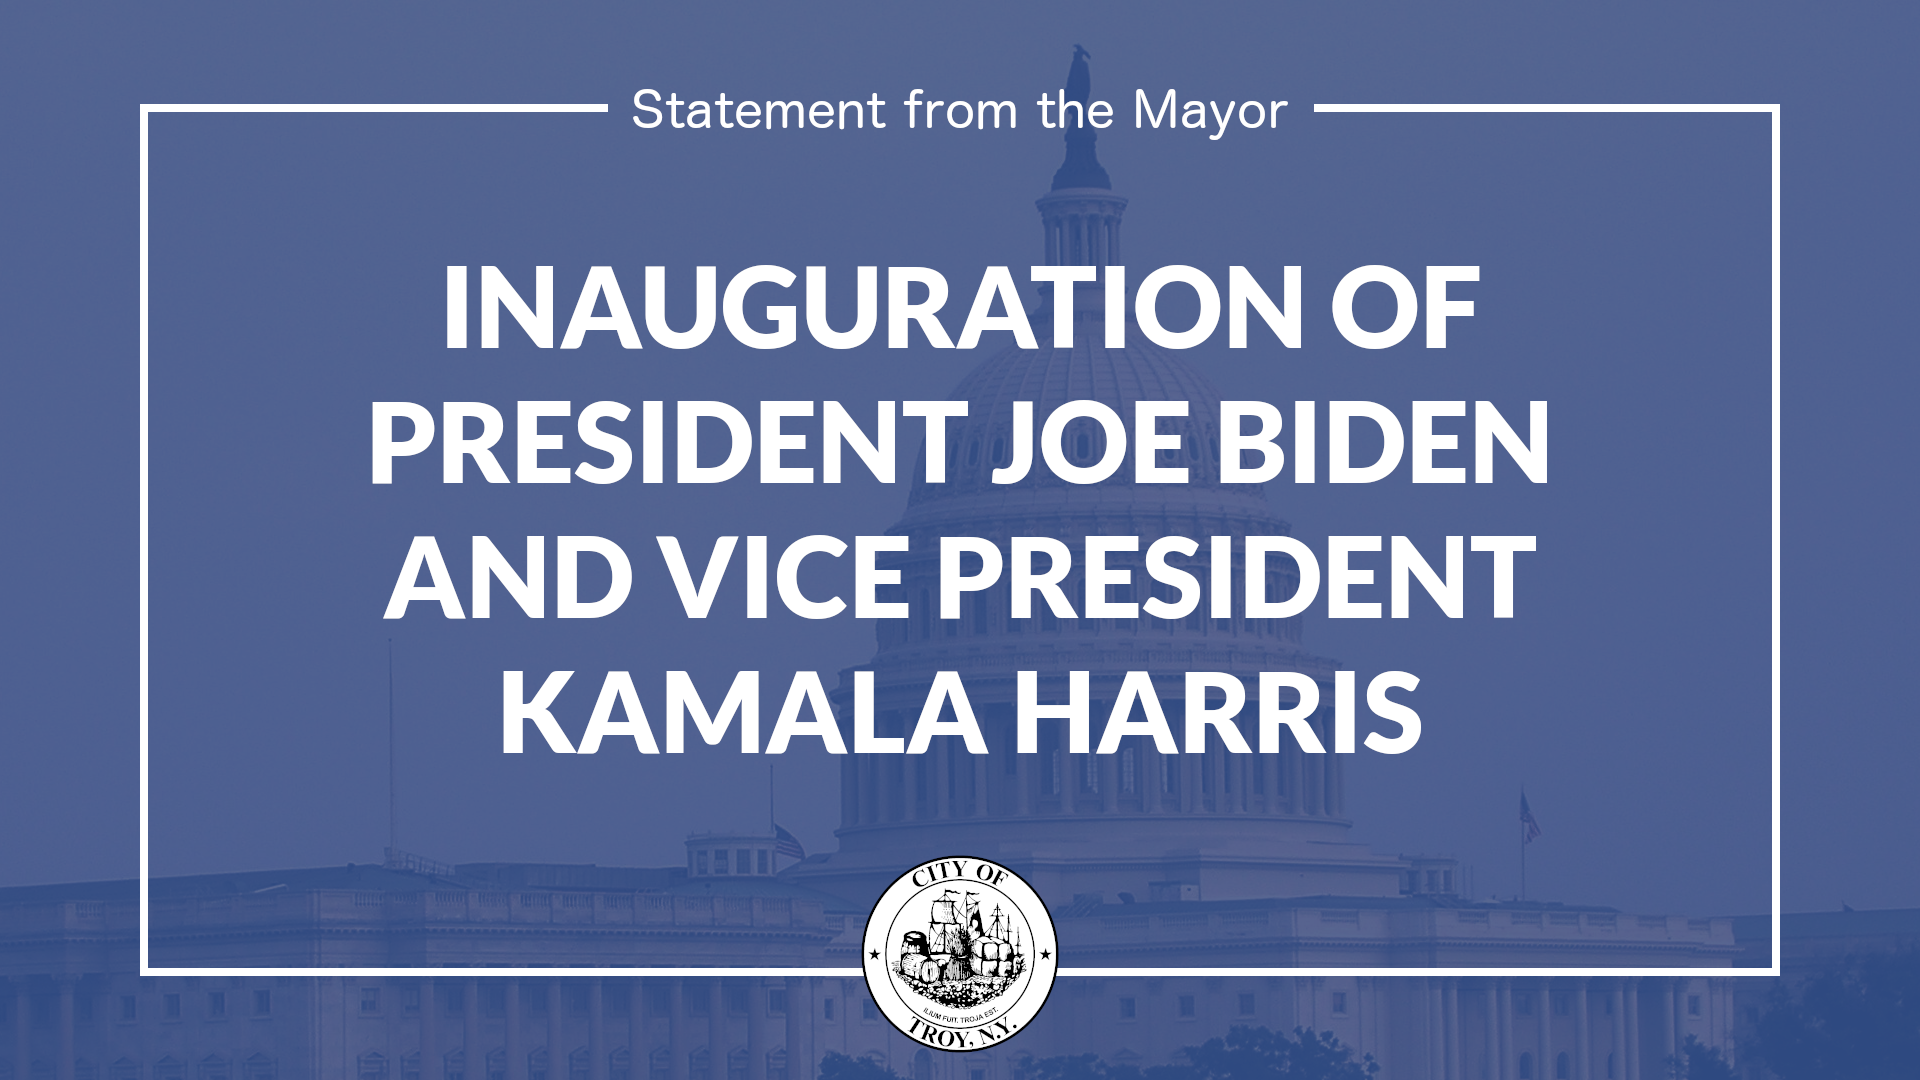 White text against a dark blue background. Text reads Statement from the Mayor, Inauguration of President Joe Biden and Vice President Kamala Harris. The text is surrounded by a white box, with the official seal of the City visible below. An image of the U.S. Capitol building is visible in the background